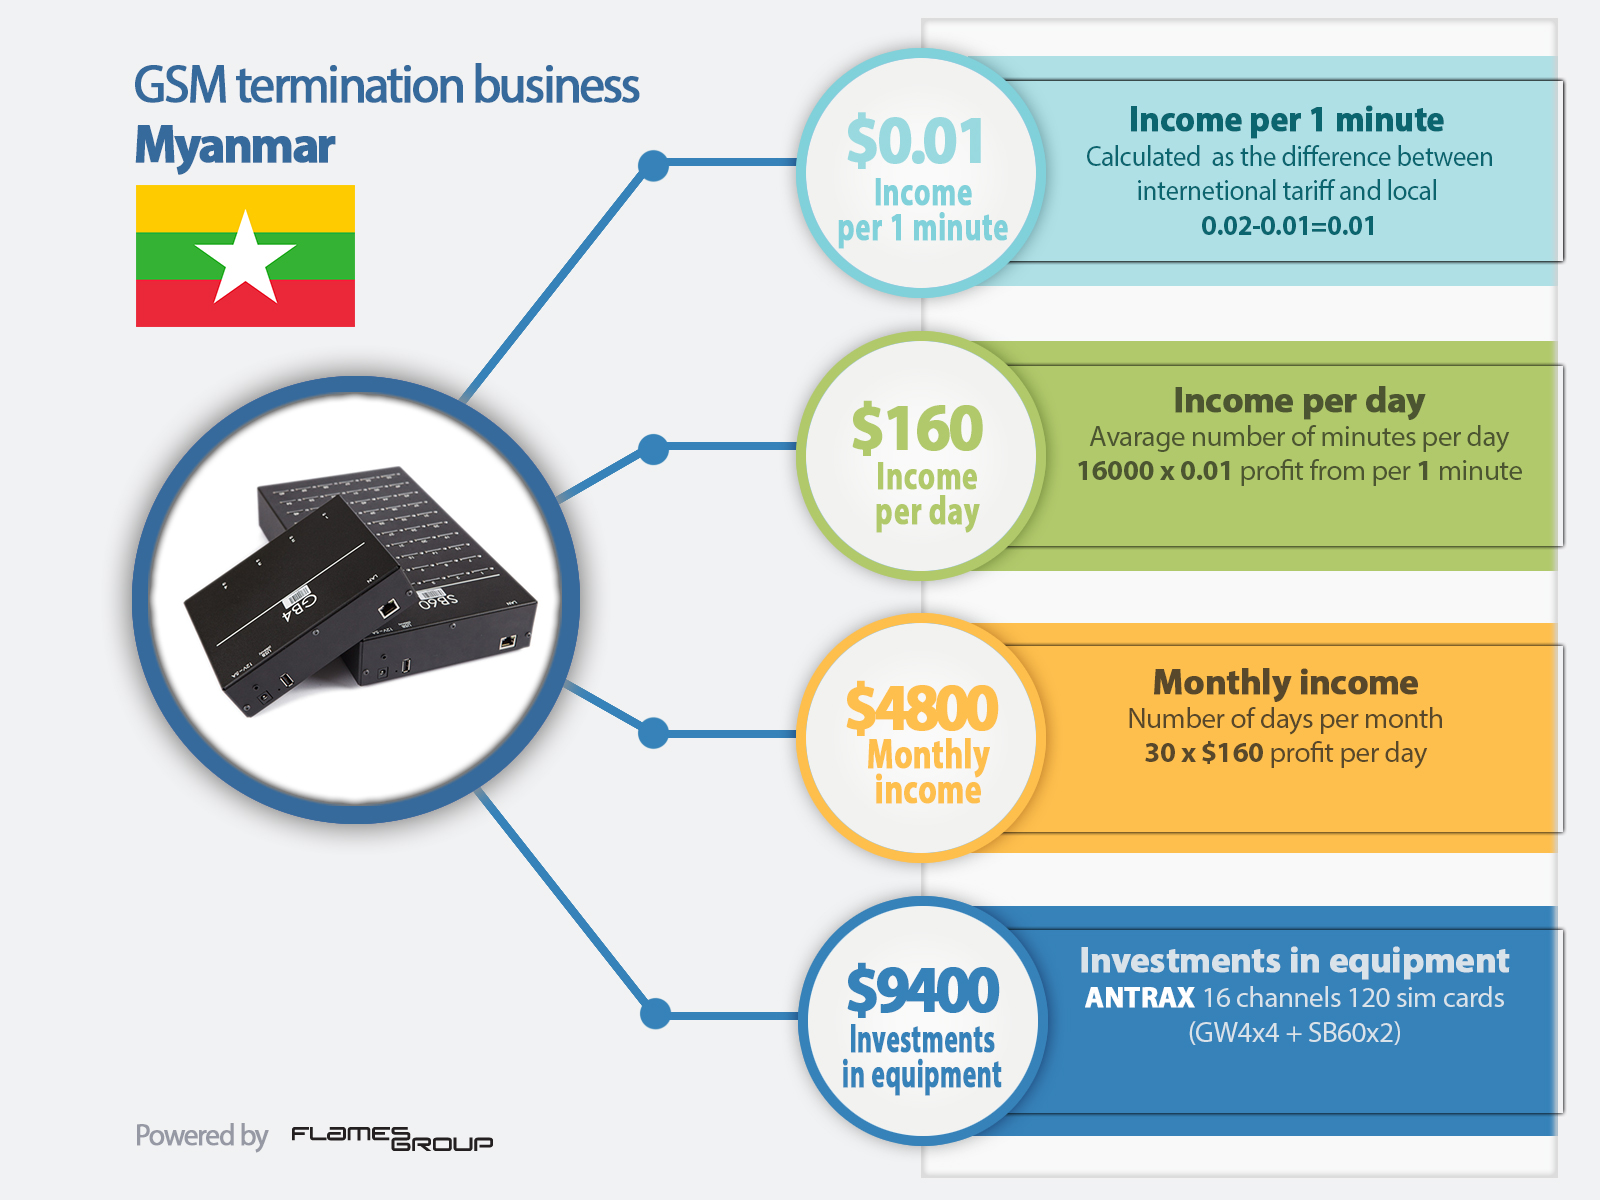 GSM termination in Myanmar - Infographic ANTRAX